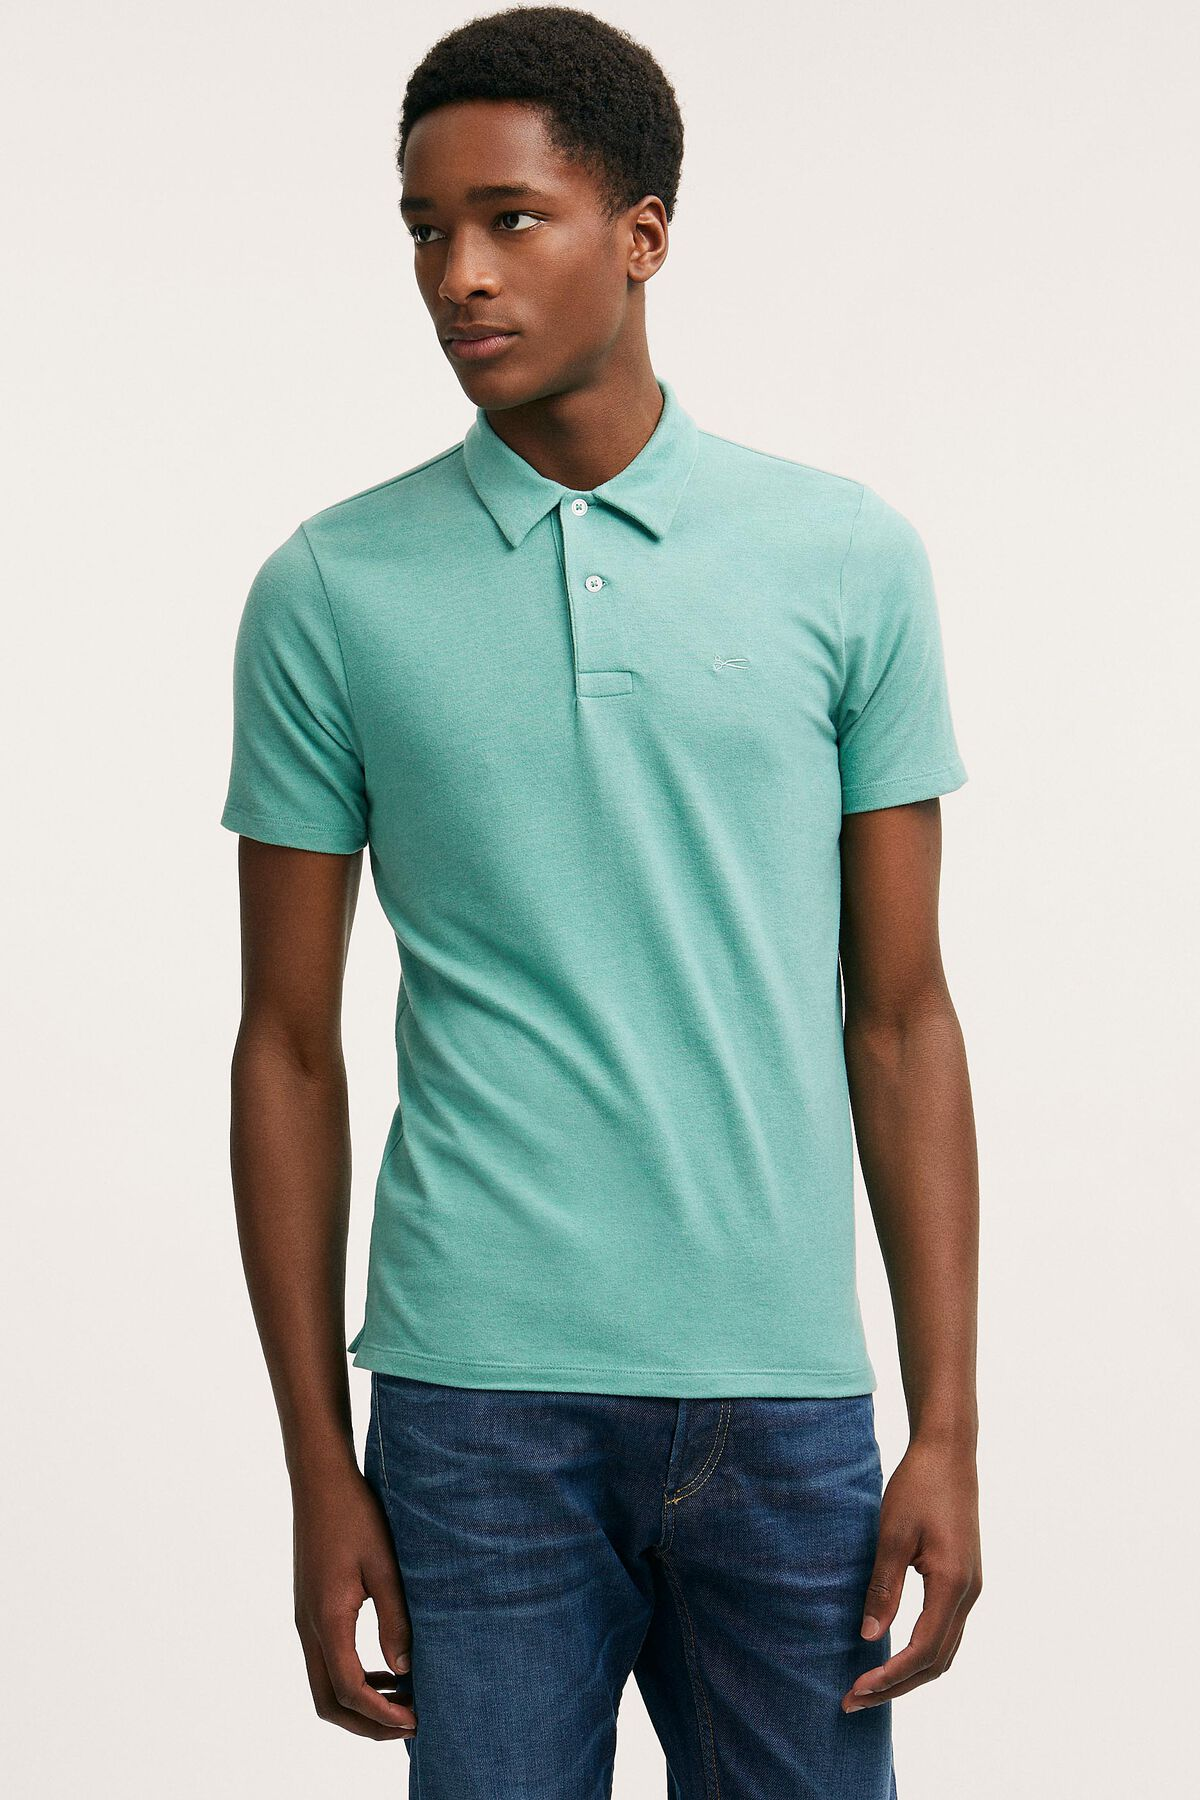 GARY POLO Light Cotton Melange Jersey - Slim Fit